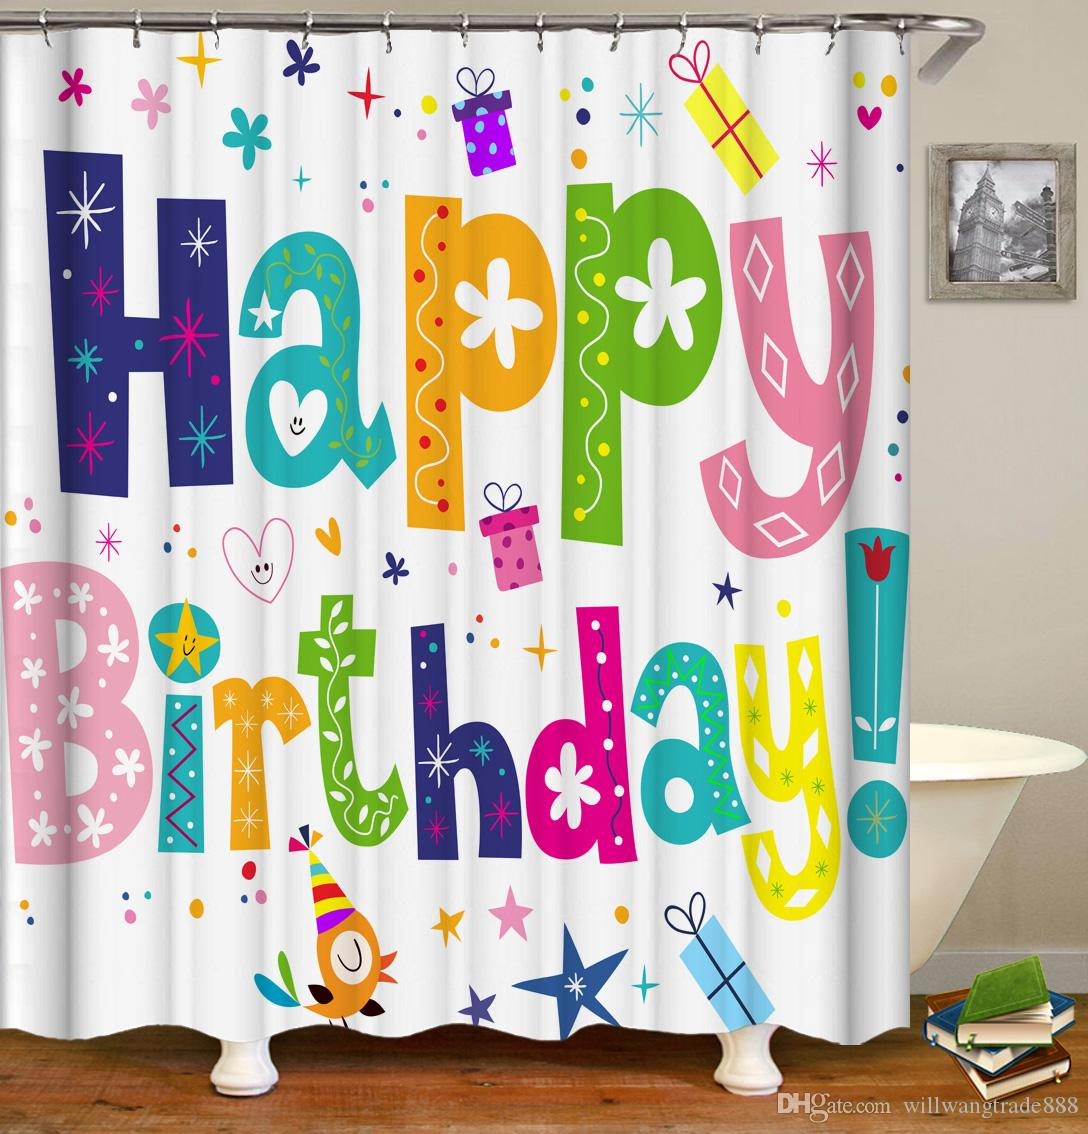 2018 waterproof flowers happy birthday cakes and candles shower 2018 waterproof flowers happy birthday cakes and candles shower curtain digital printing bath curtain with rings 71x71inch from willwangtrade888 izmirmasajfo